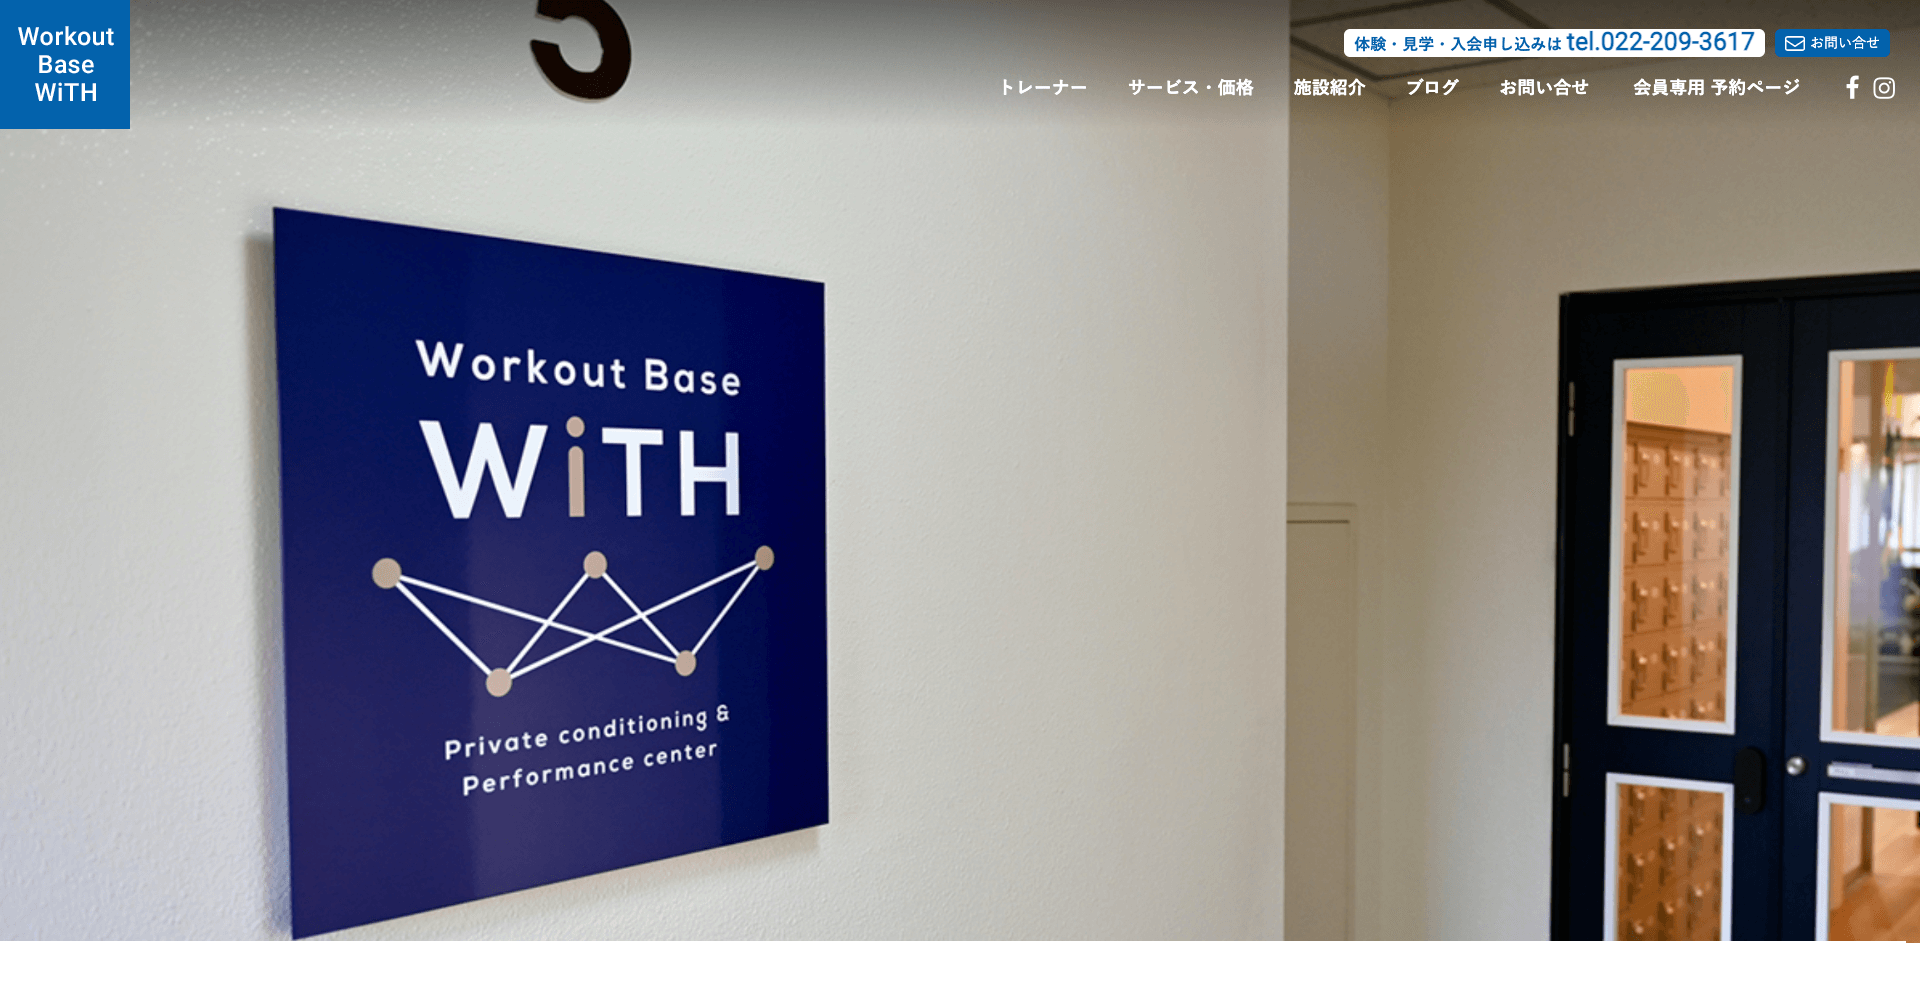 Workout Base WiTH